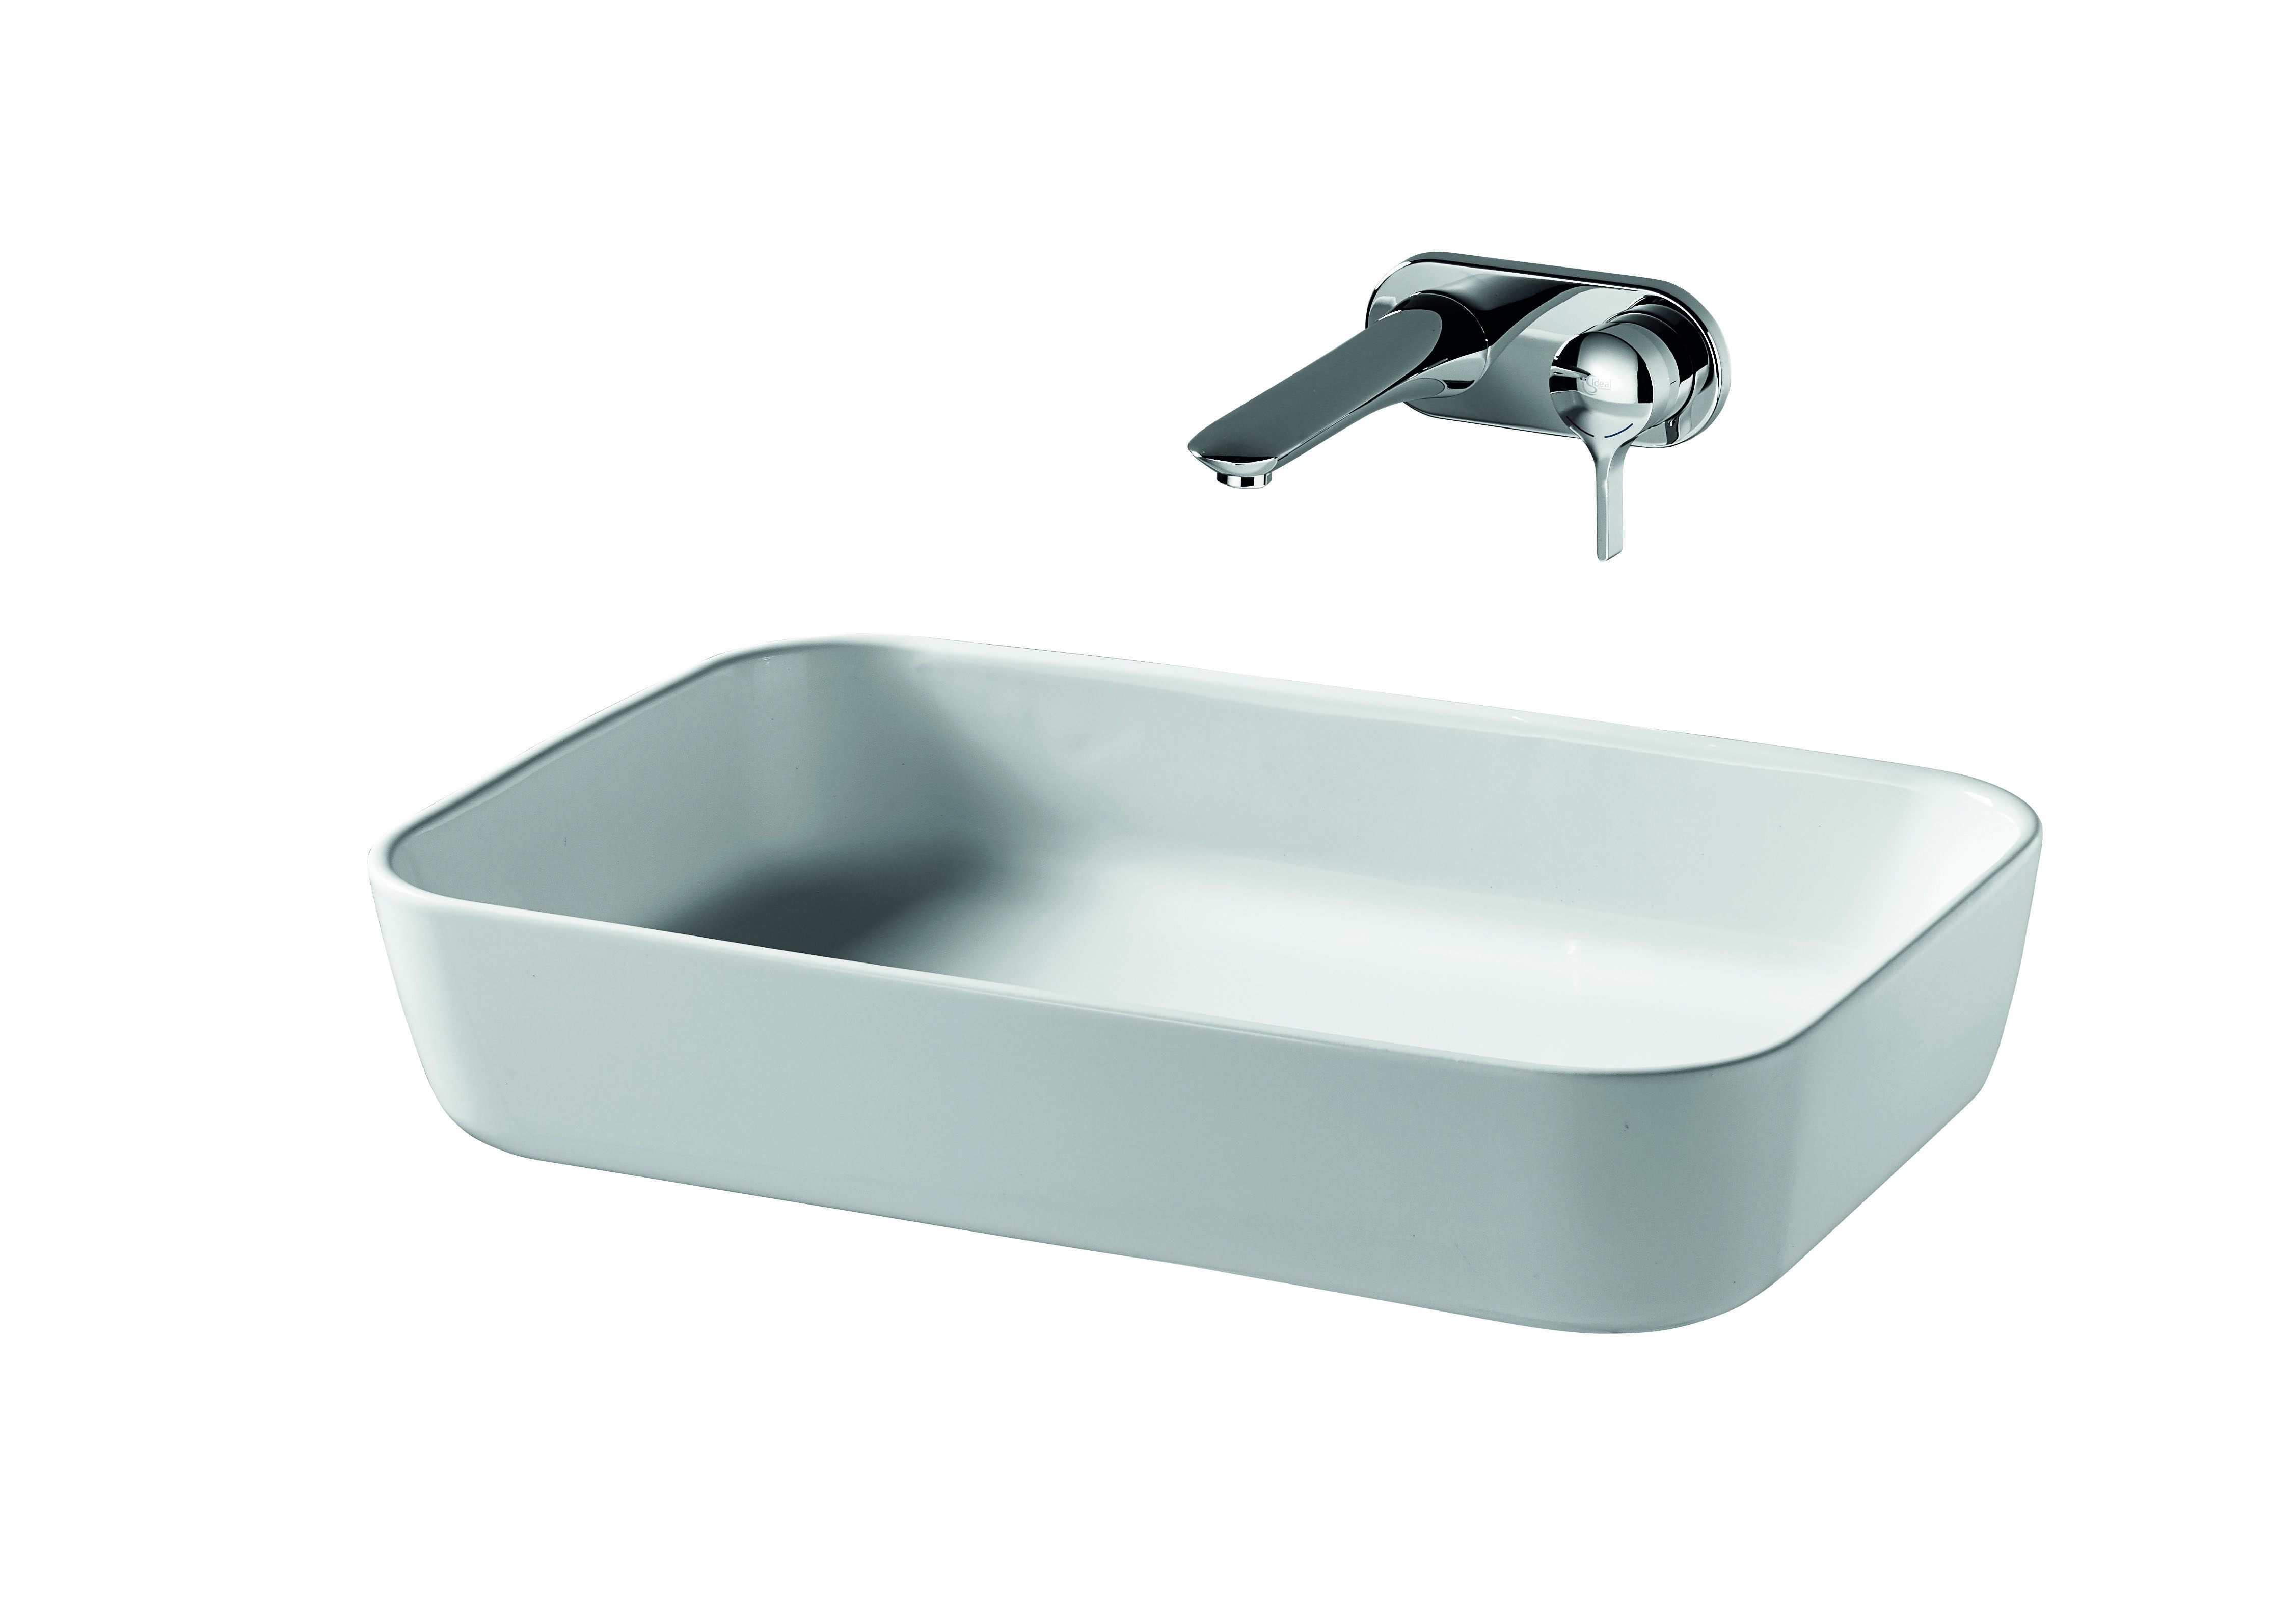 Bonamico is available in two shapes, each embracing the same design principles – the smaller basin is circular while the larger basin is extruded into a rounded rectangular form. #bathroomdesign